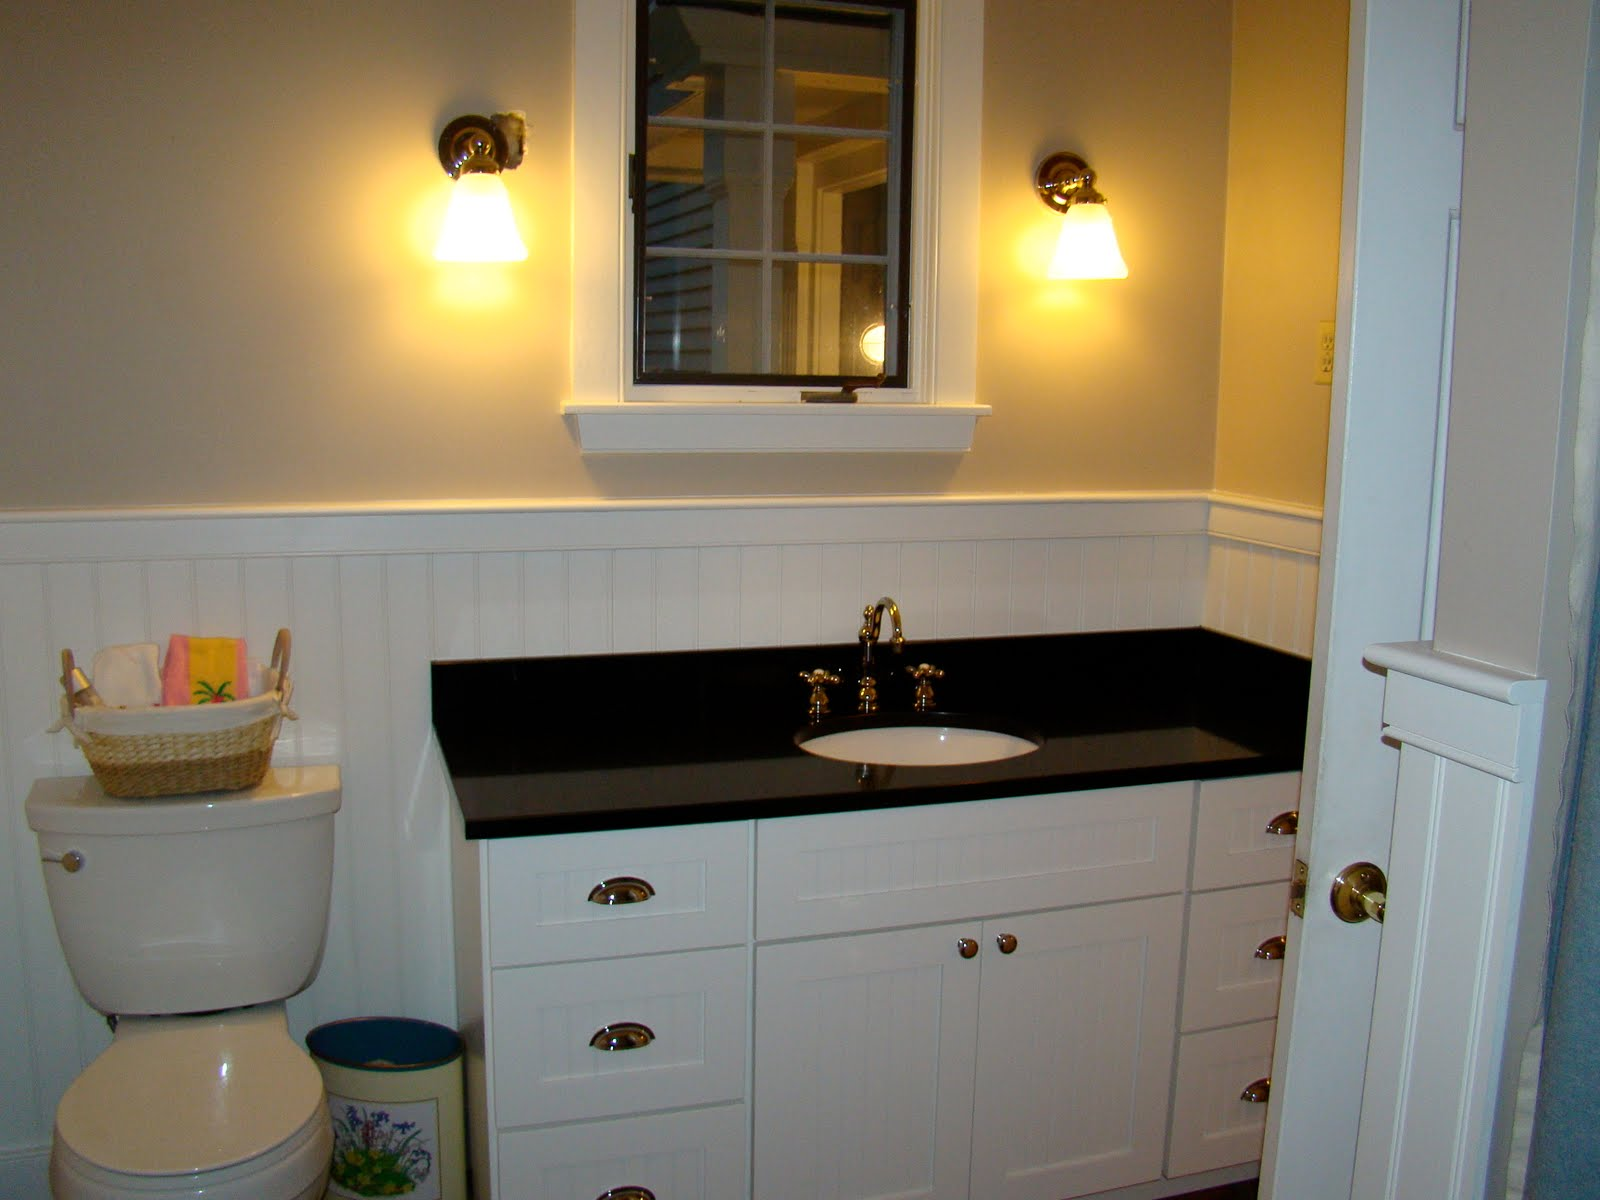 Small Kitchen Wainscoting Backsplash Pictures